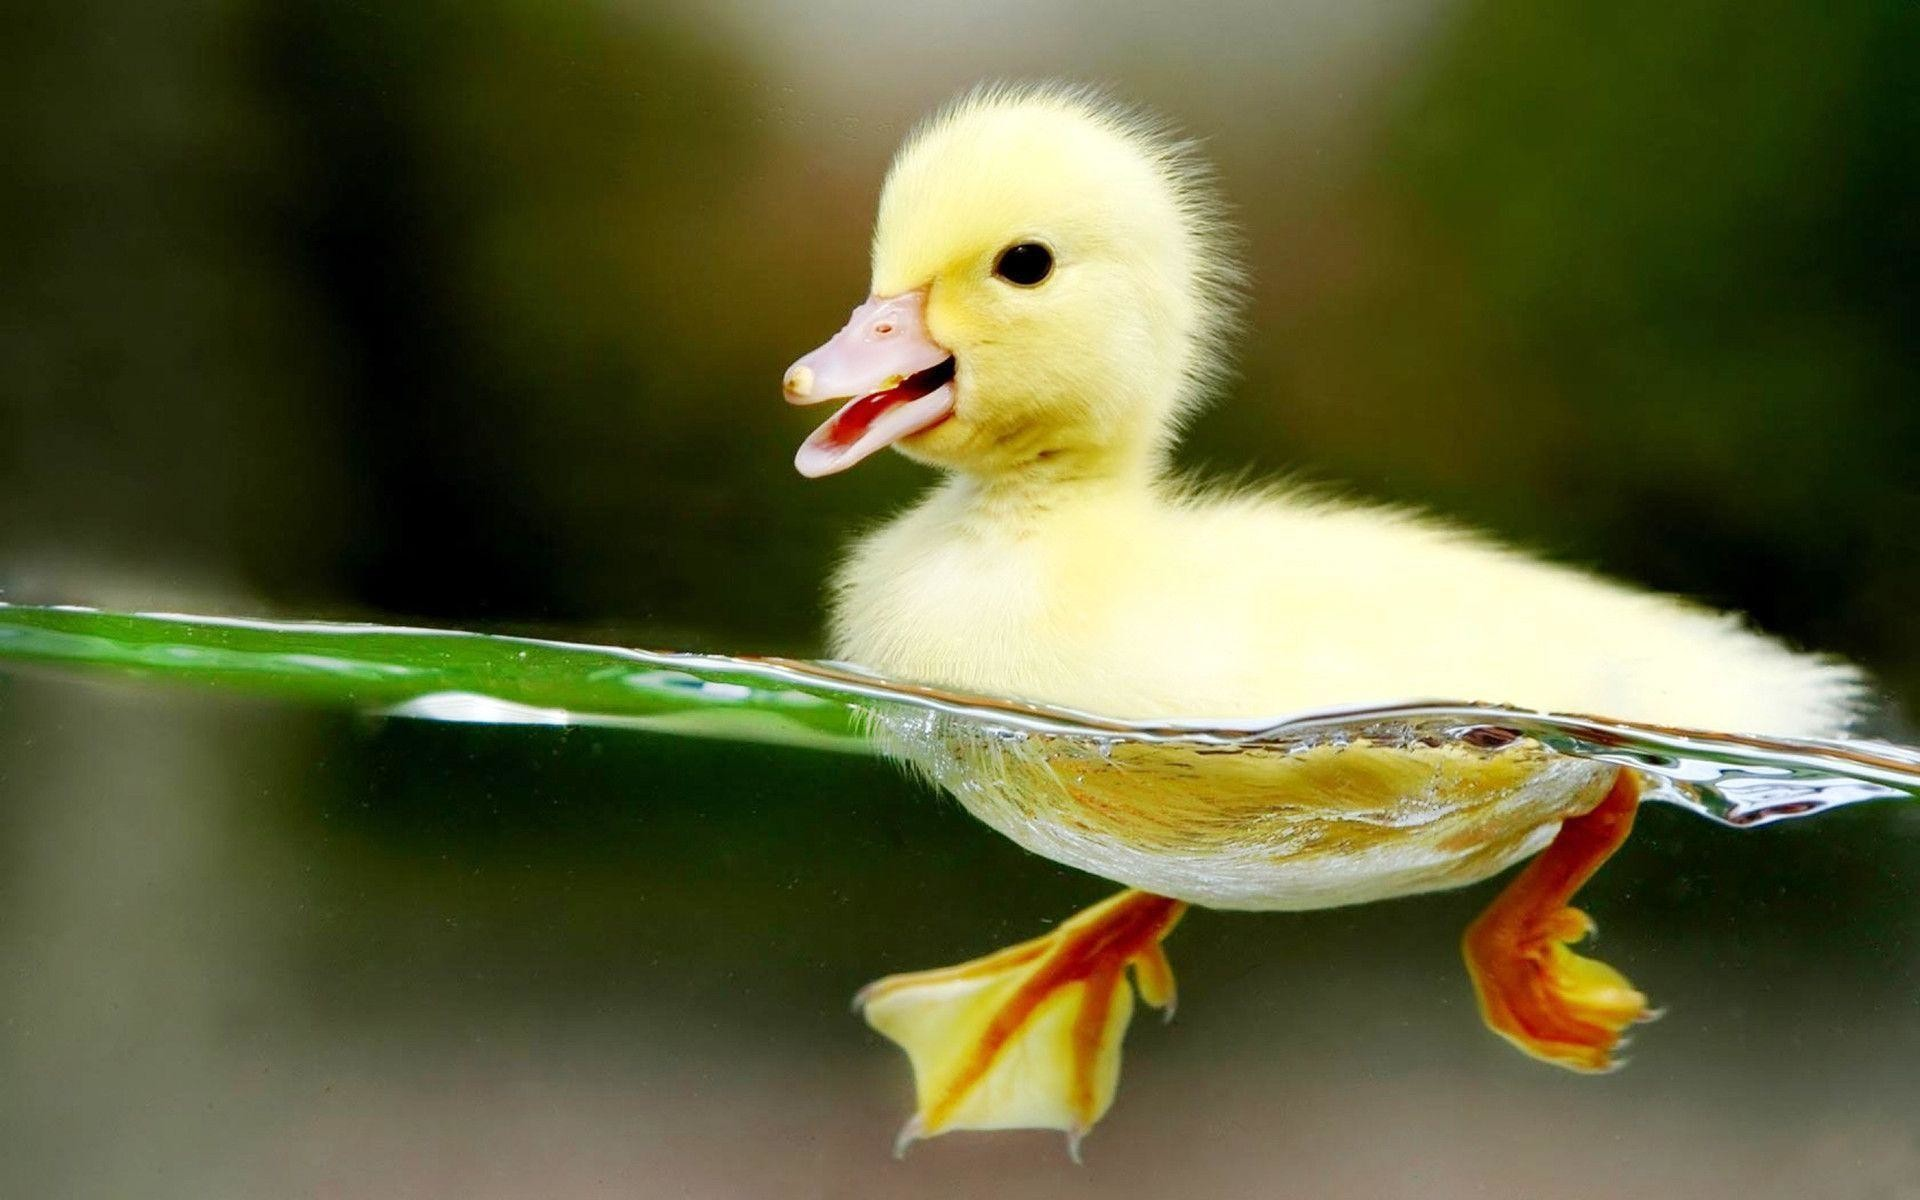 Res: 1920x1200, Baby Duck Swimming Hd Wallpapers - HD Wallpapers Inn